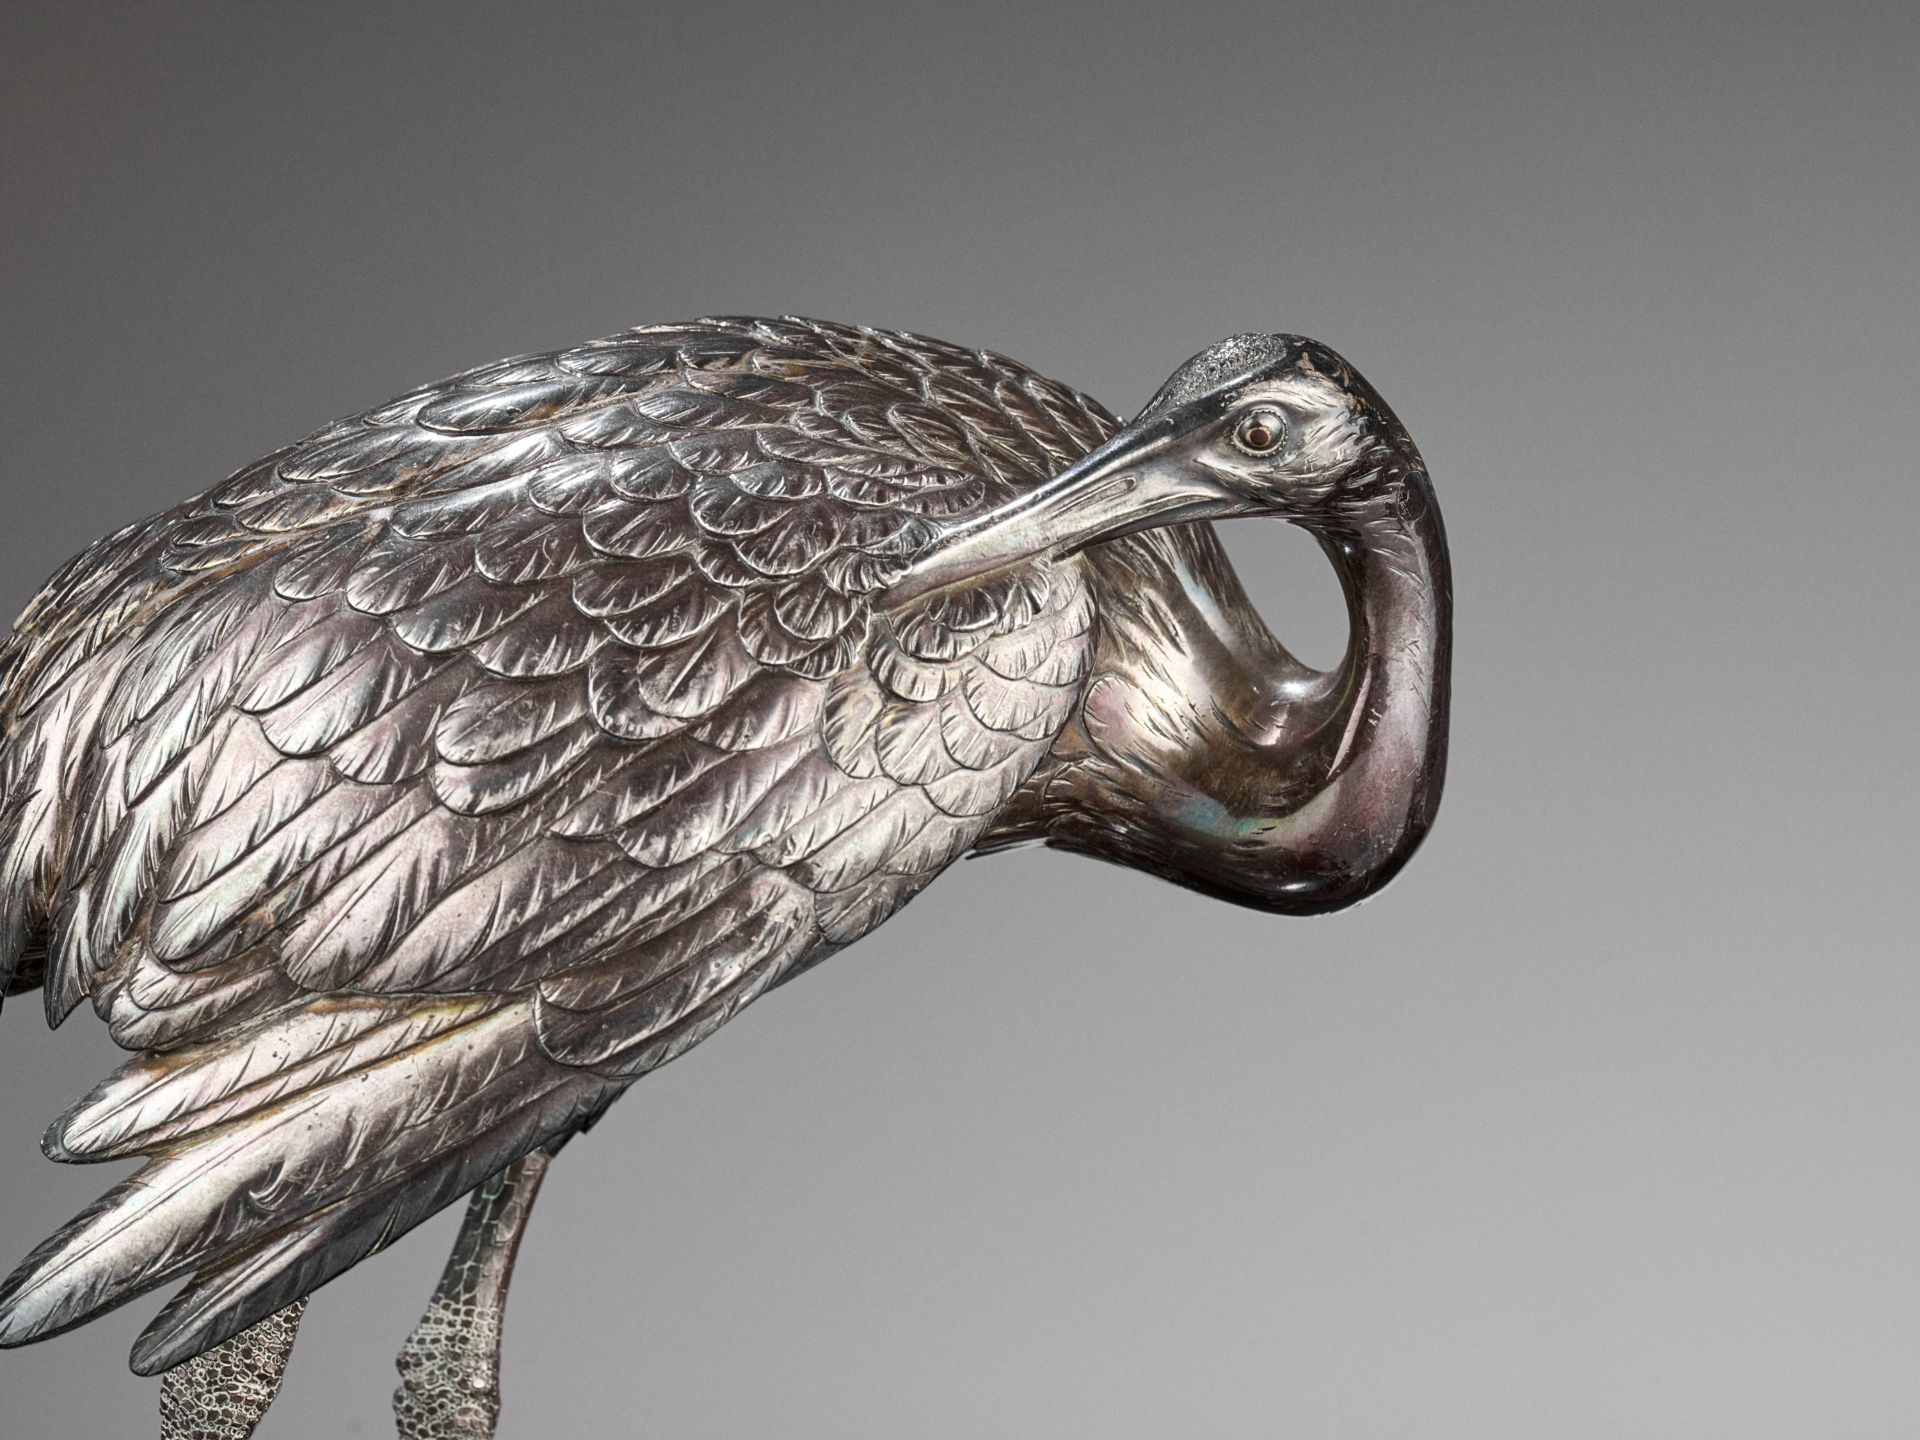 MUSASHIYA: A FINE AND RARE SILVERED OKIMONO OF A PAIR OF CRANES - Image 3 of 11